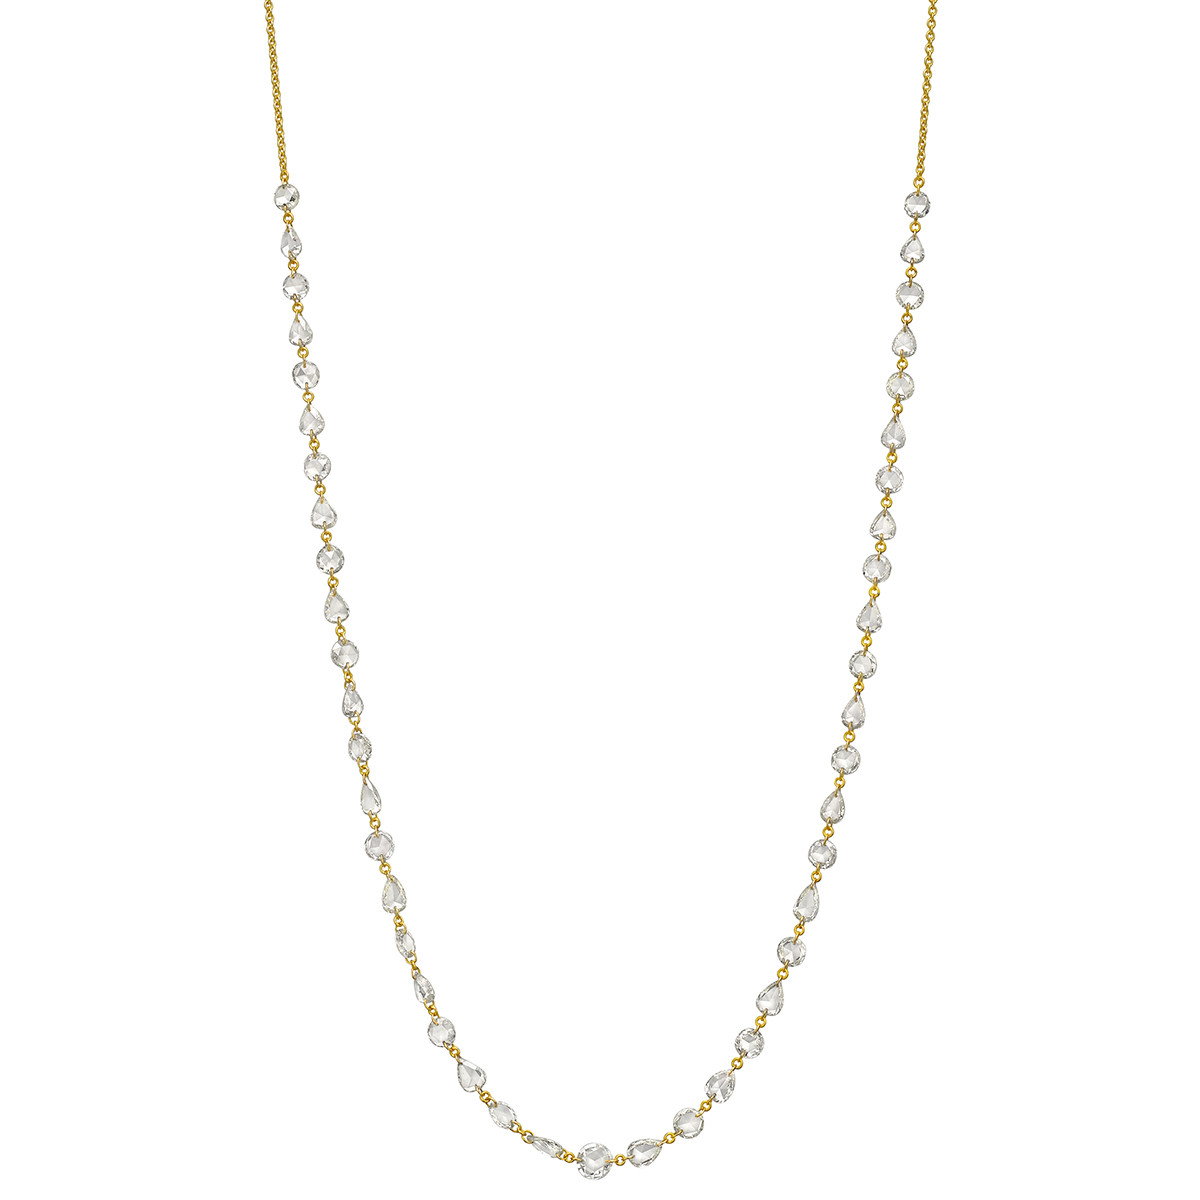 Mixed-Cut Diamond Chain Necklace (6.21 ct tw)